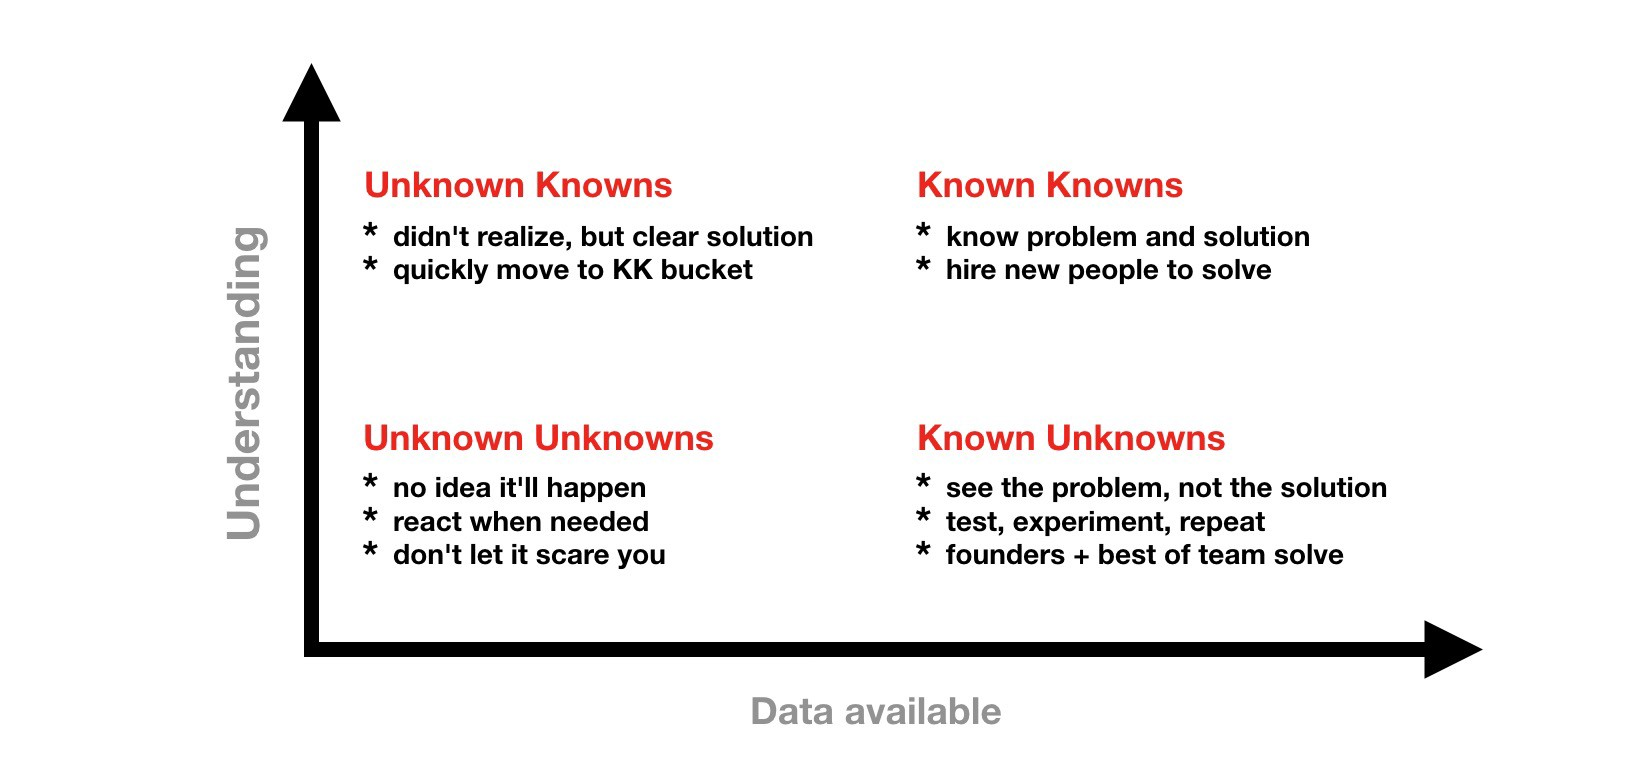 Focus on the known unknowns, which is a mountain you know you have to climb, but haven't yet found the path.